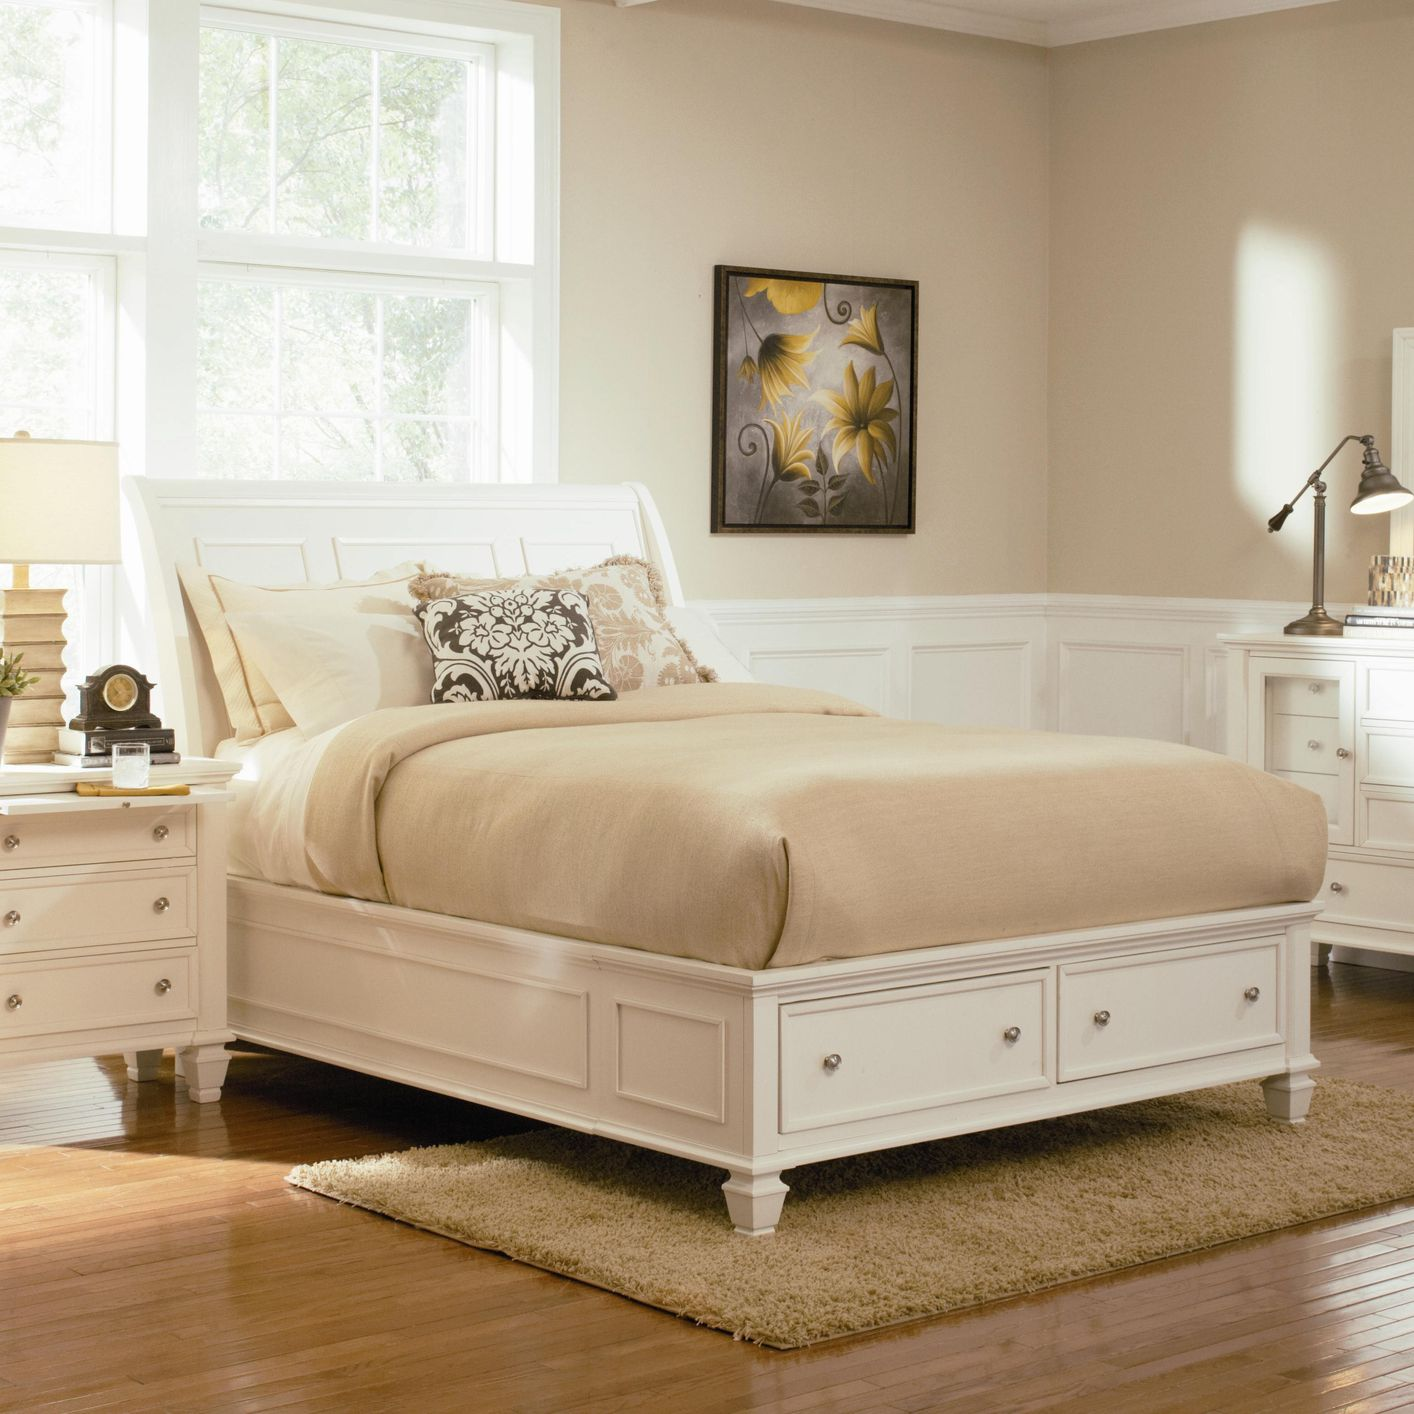 White Wood Queen Size Bed  StealASofa Furniture Outlet